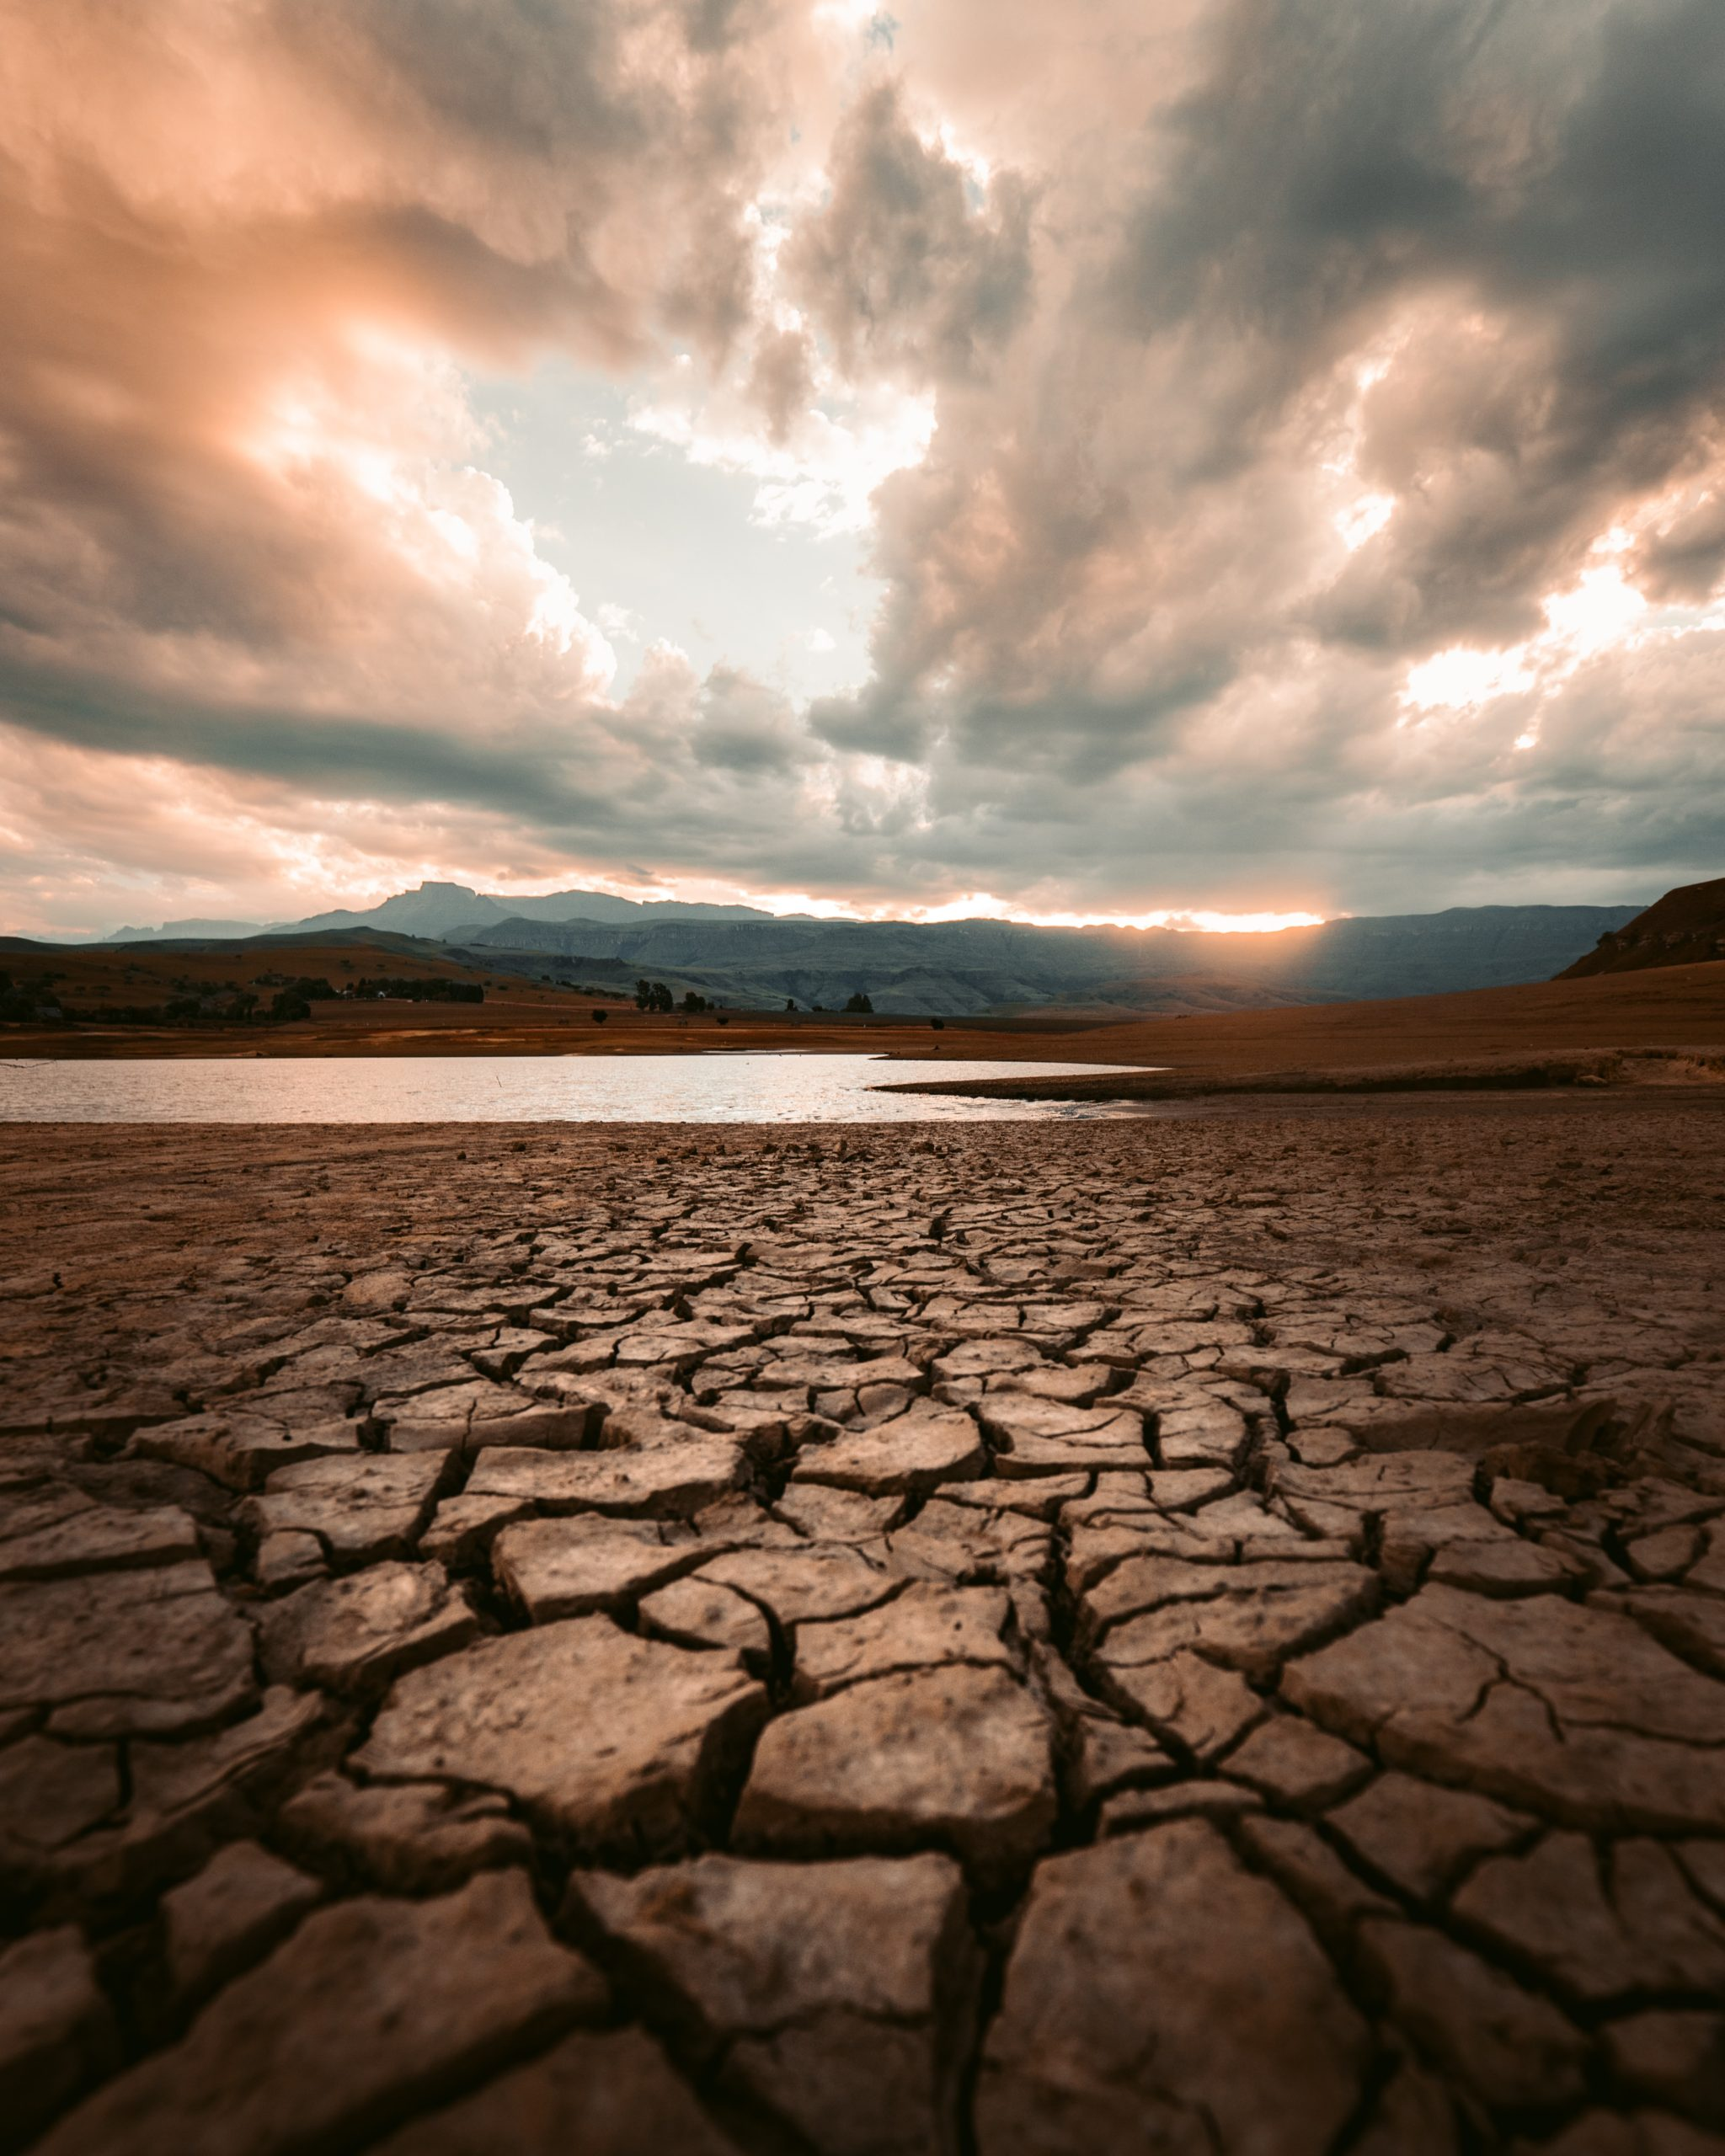 What can tech do to solve water shortages?